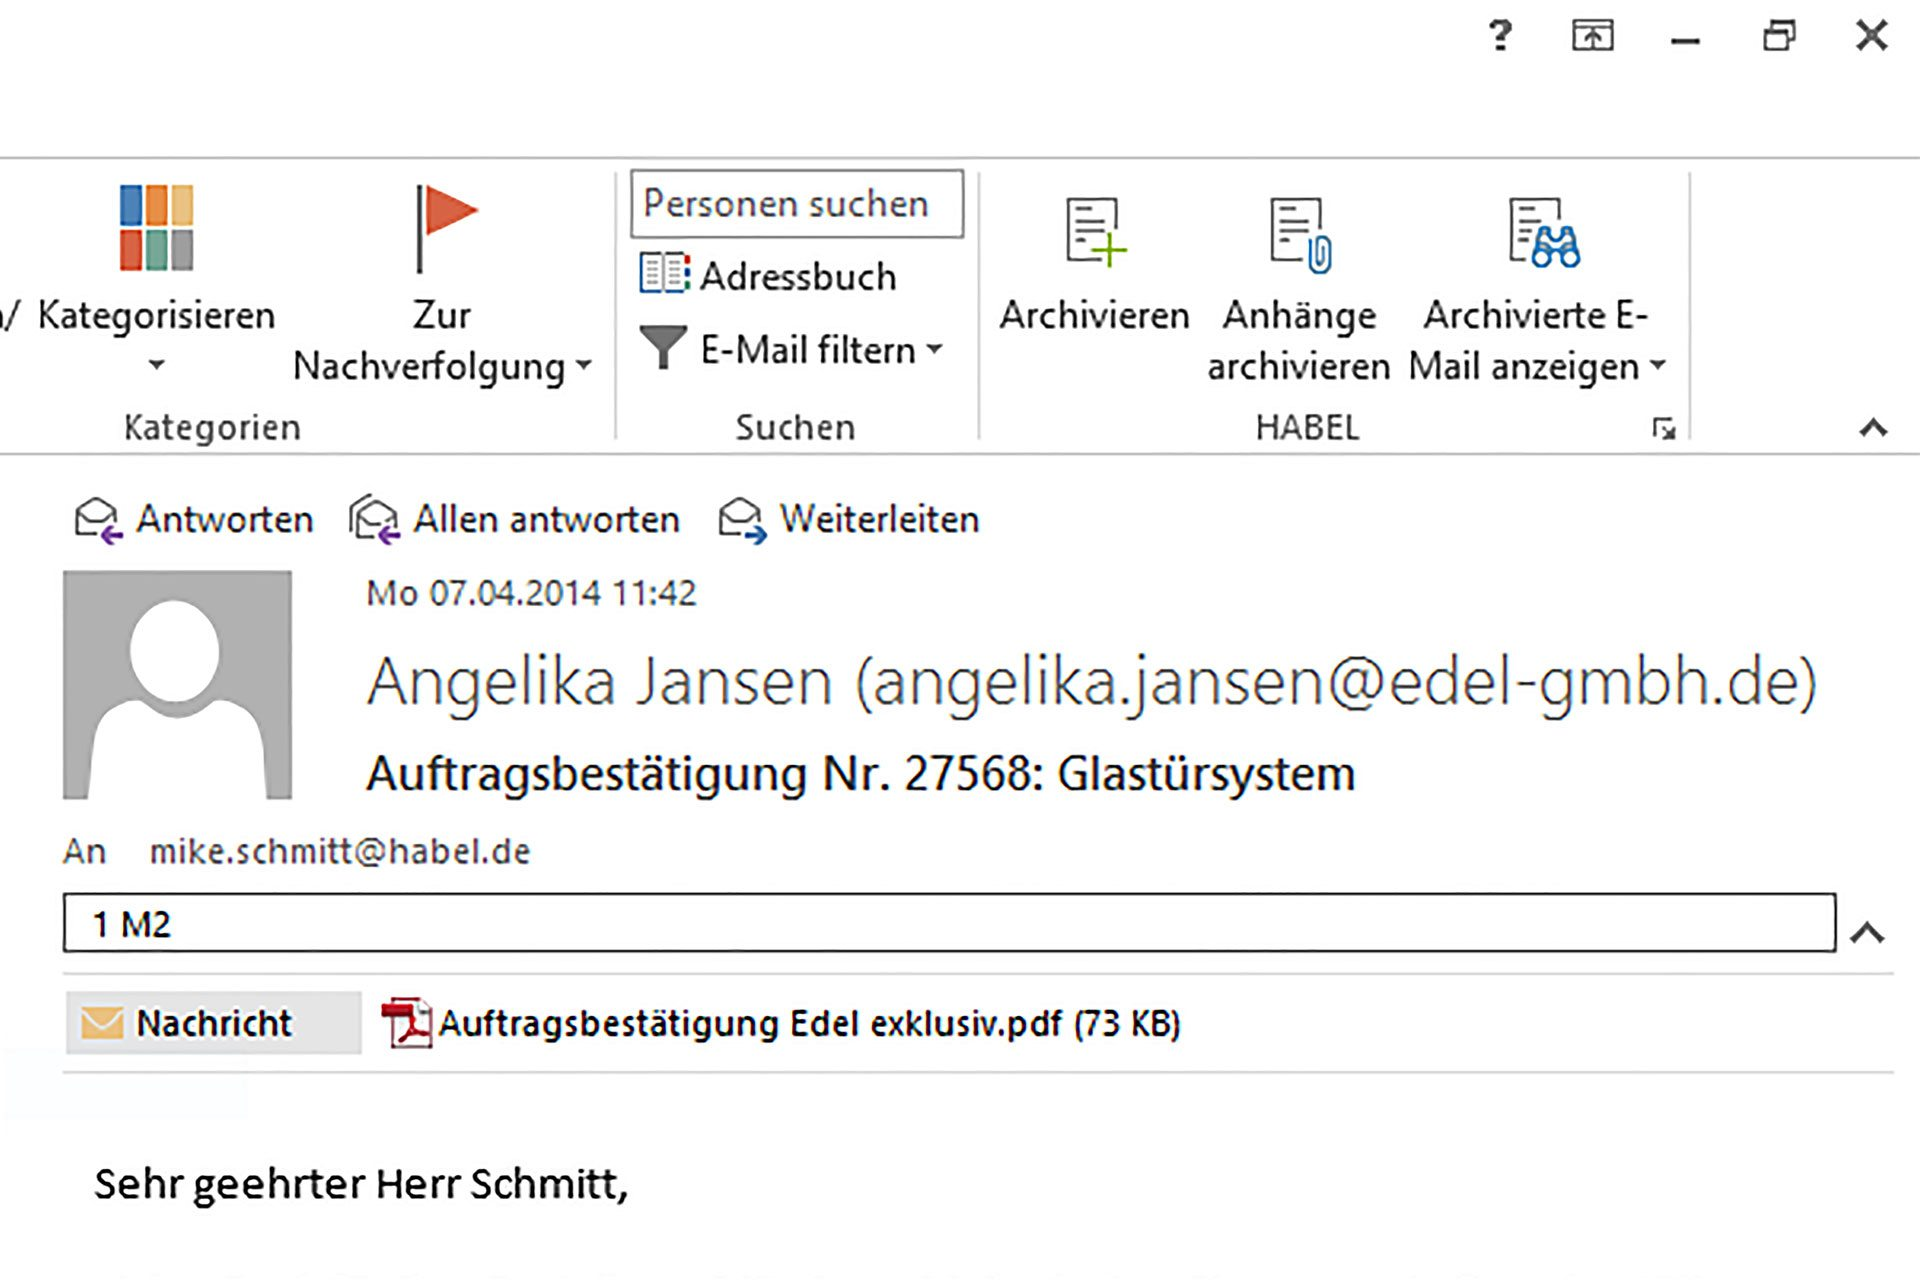 habel office outlook integration plugin screenshot